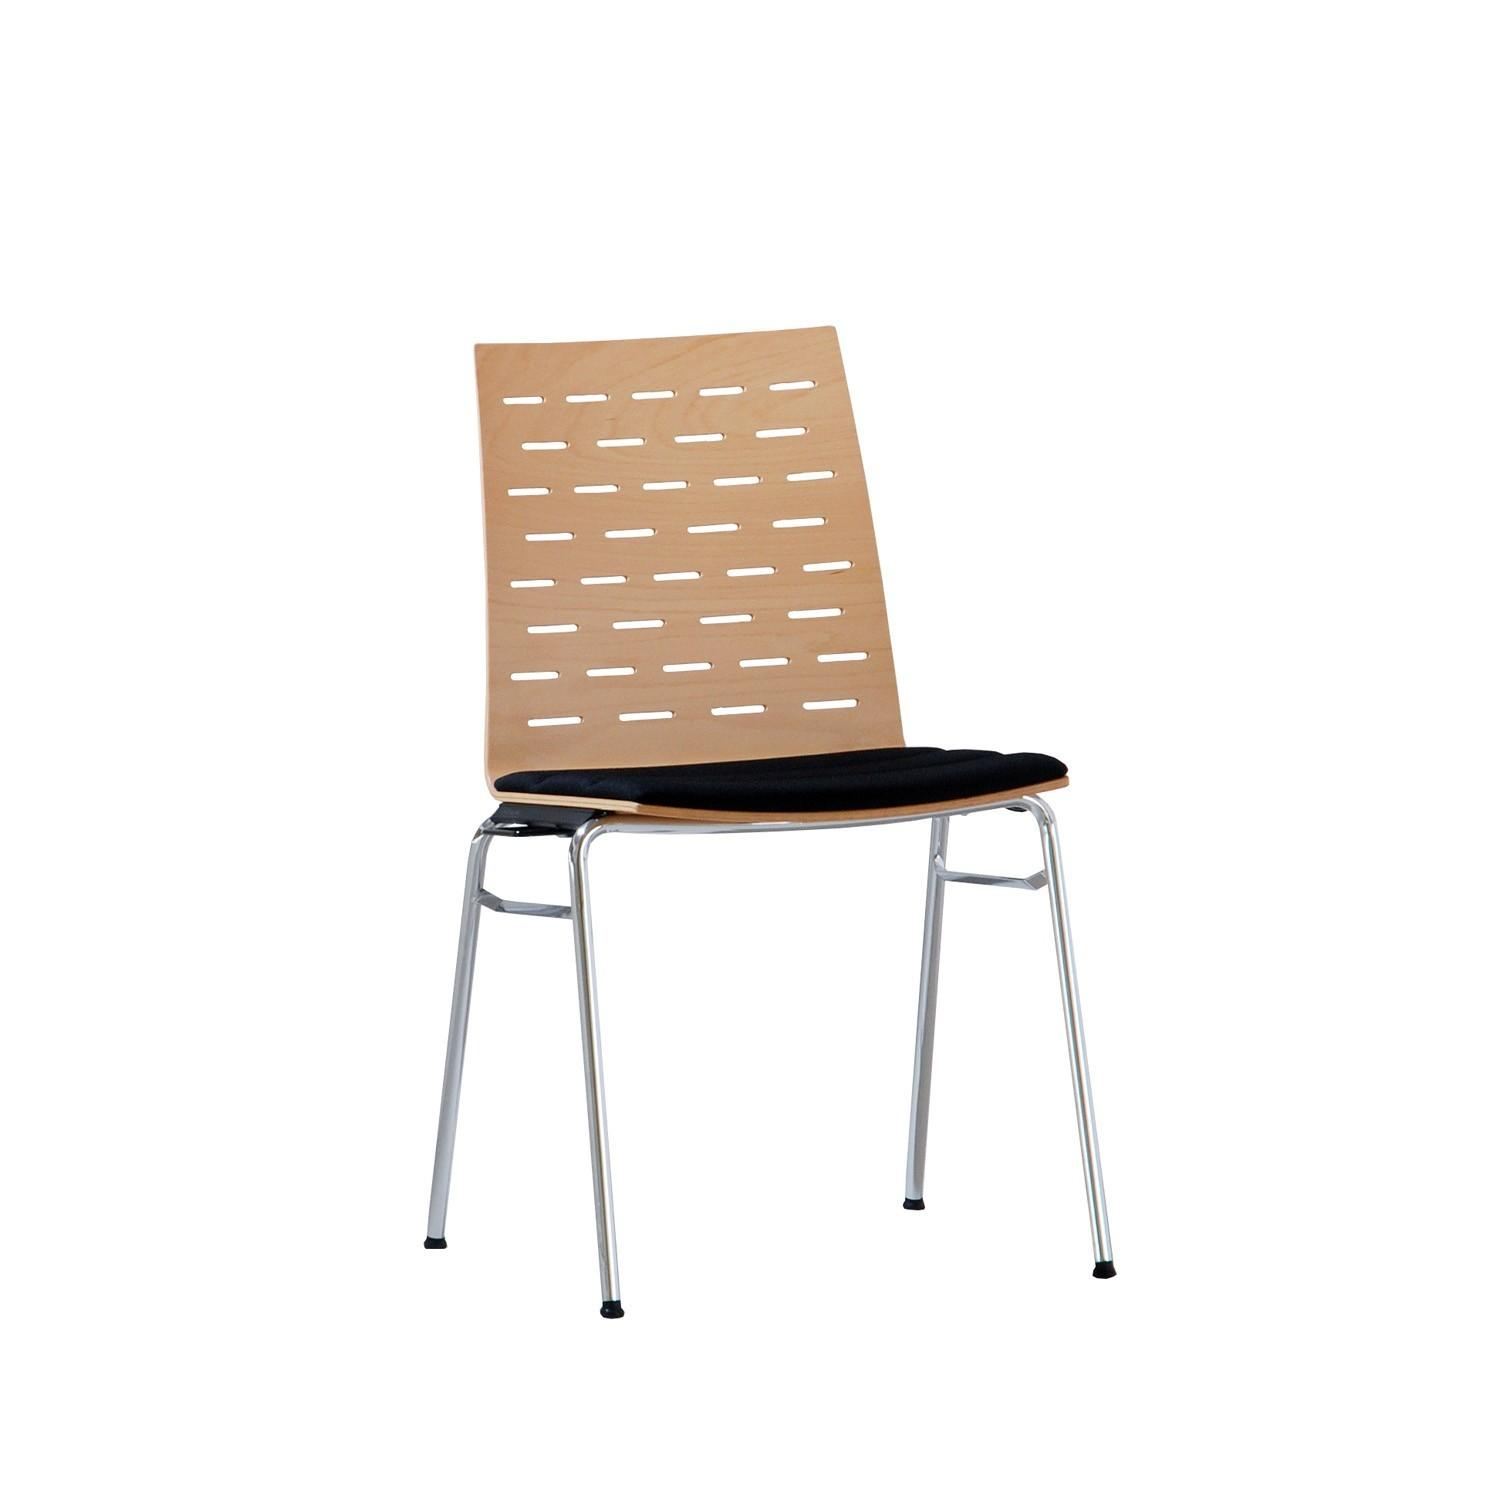 Arge2 Chair Lightweight Stackable Chairs Apres